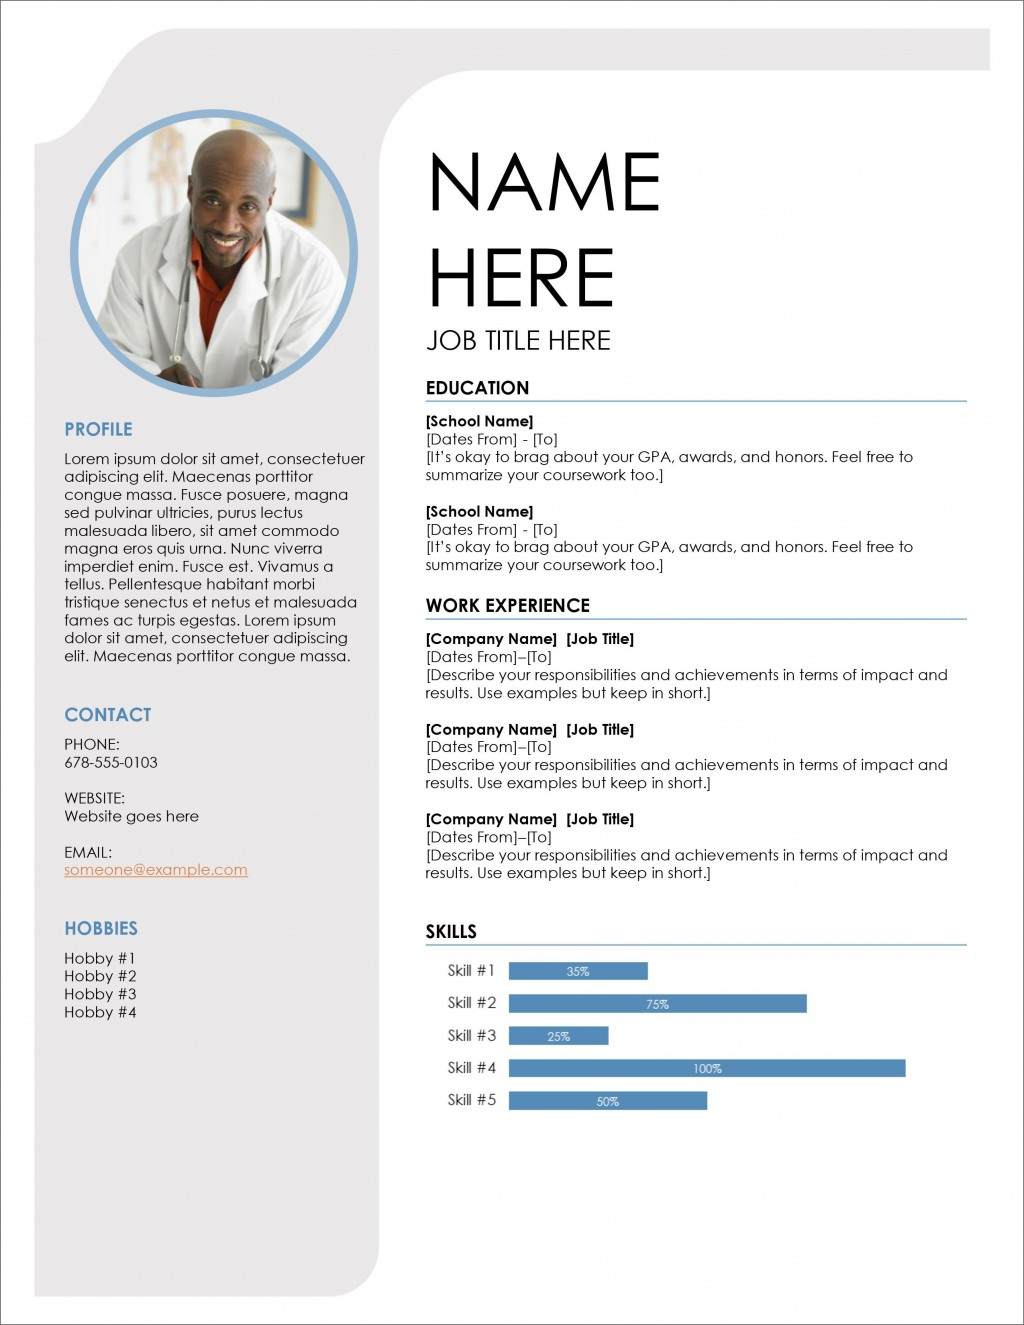 006 Unforgettable Word Cv Template Free Download Highest Quality  2020 Design Document For StudentLarge